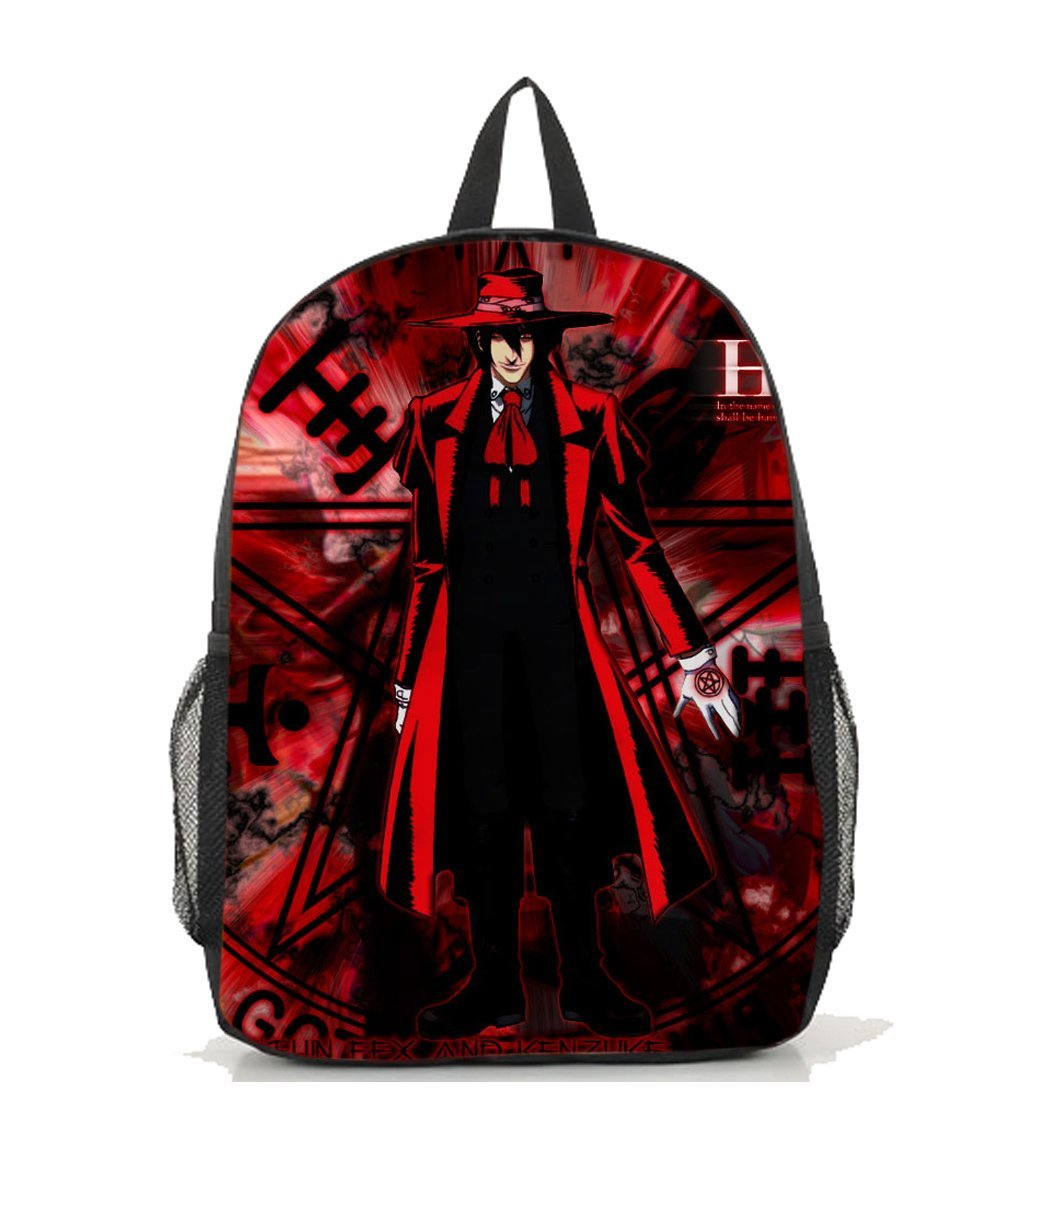 Dreamcosplay Anime Hellsing Alucard Logo New Backpack Bag cosplay